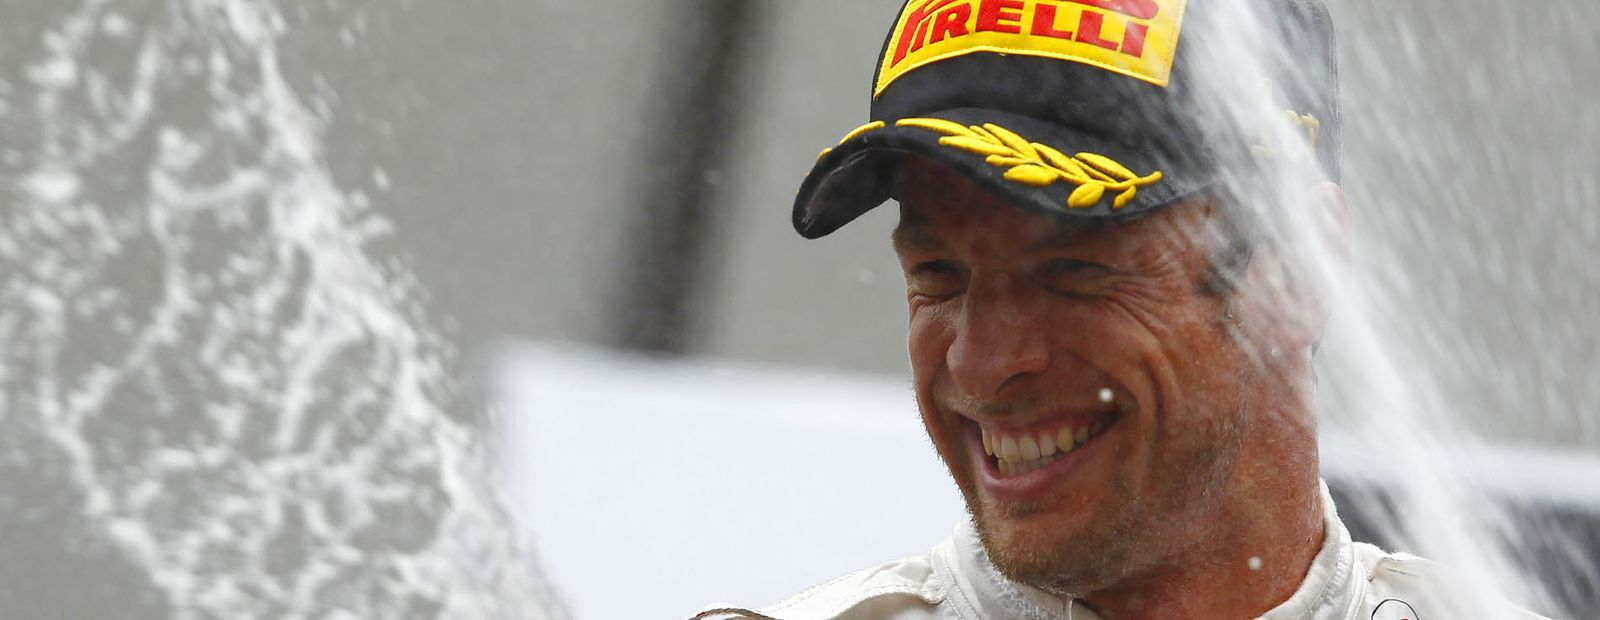 2011: Jenson Button's best McLaren season